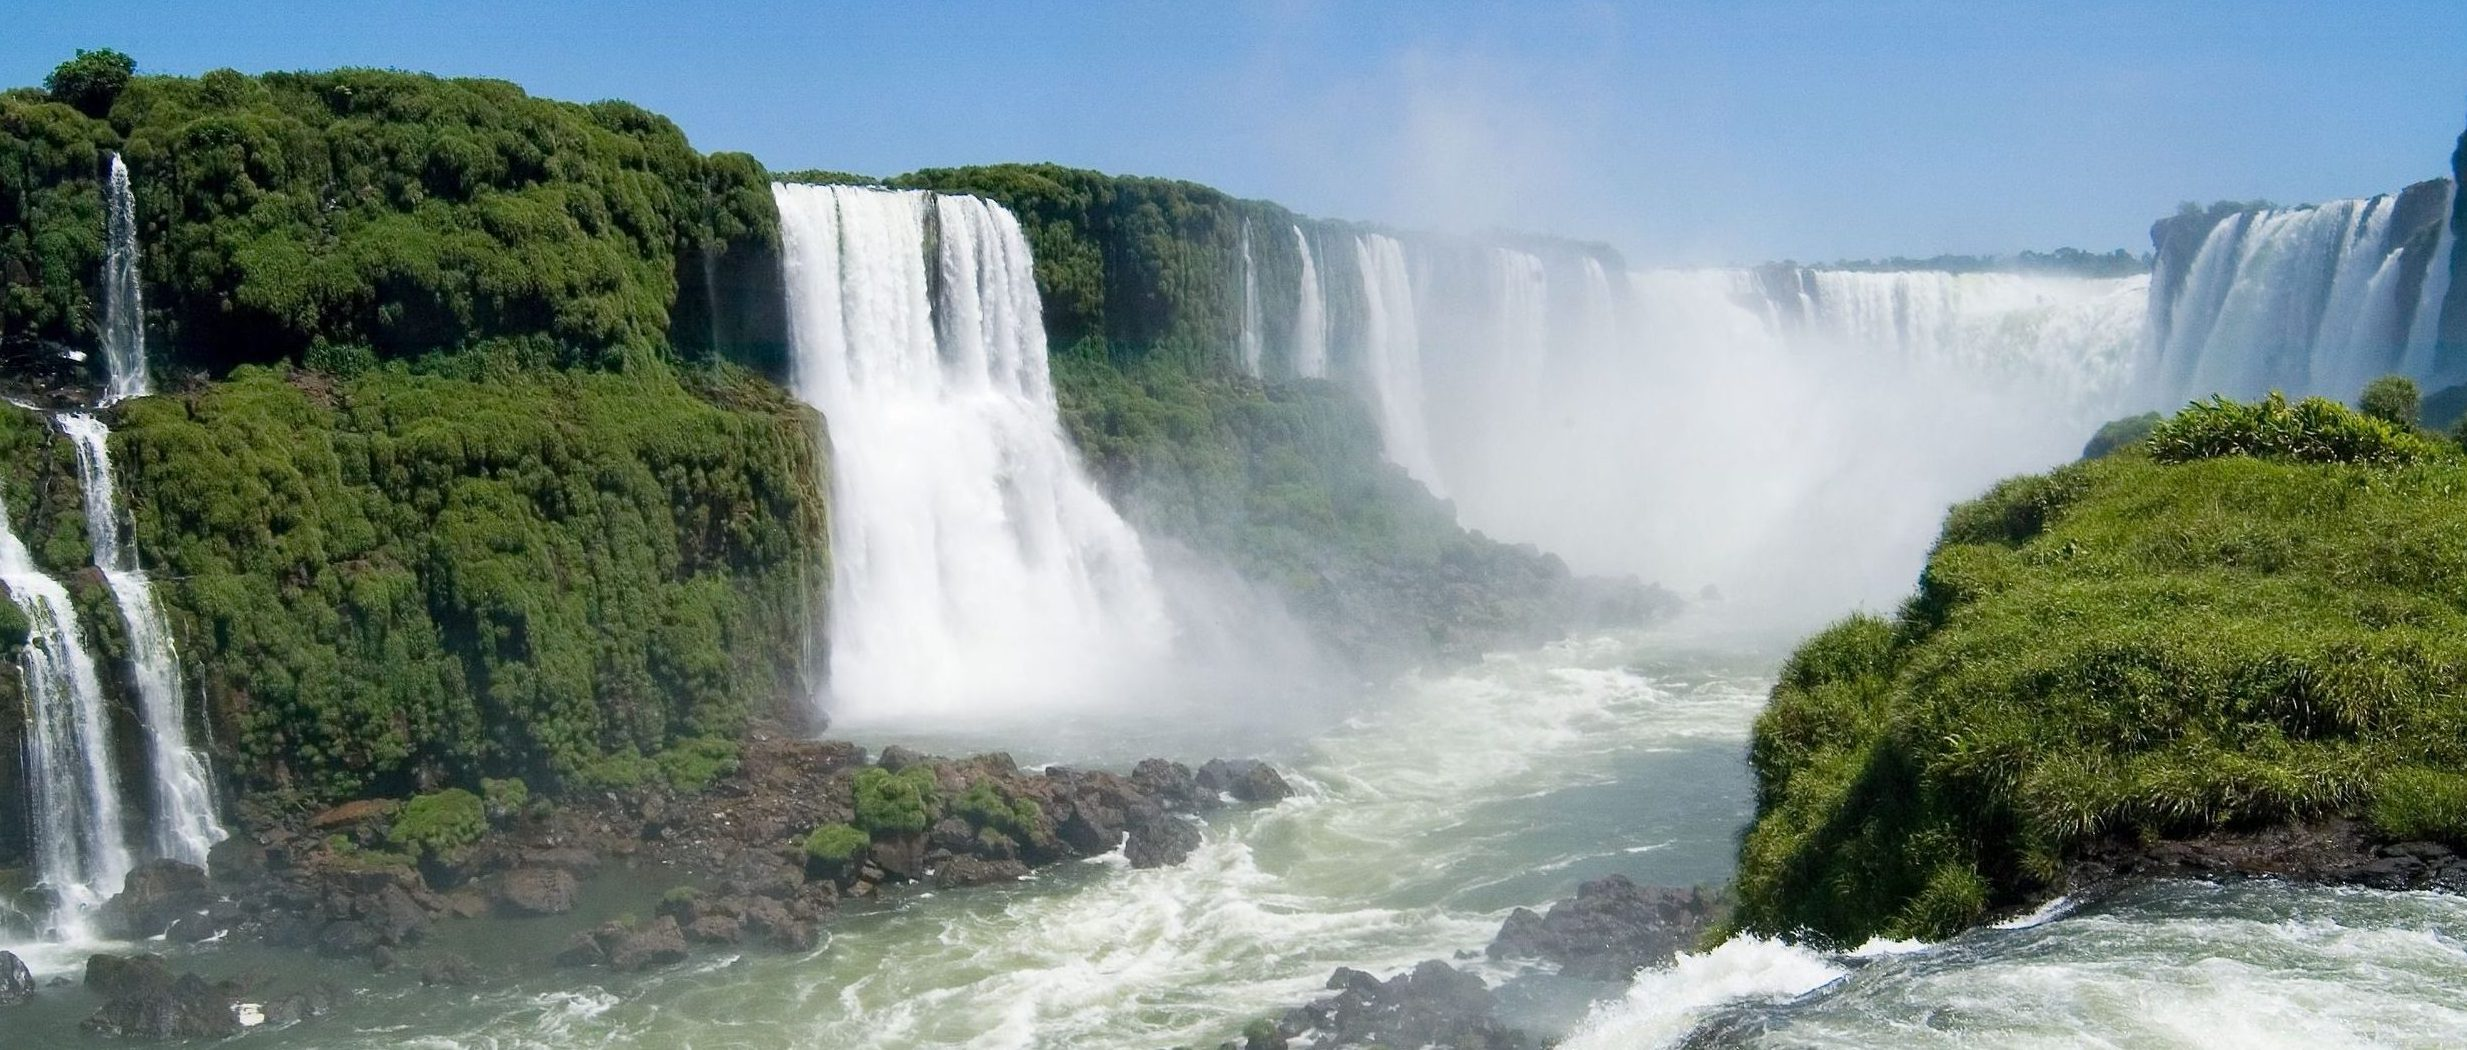 An example of the huge clouds of mist that can form around the waterfalls.